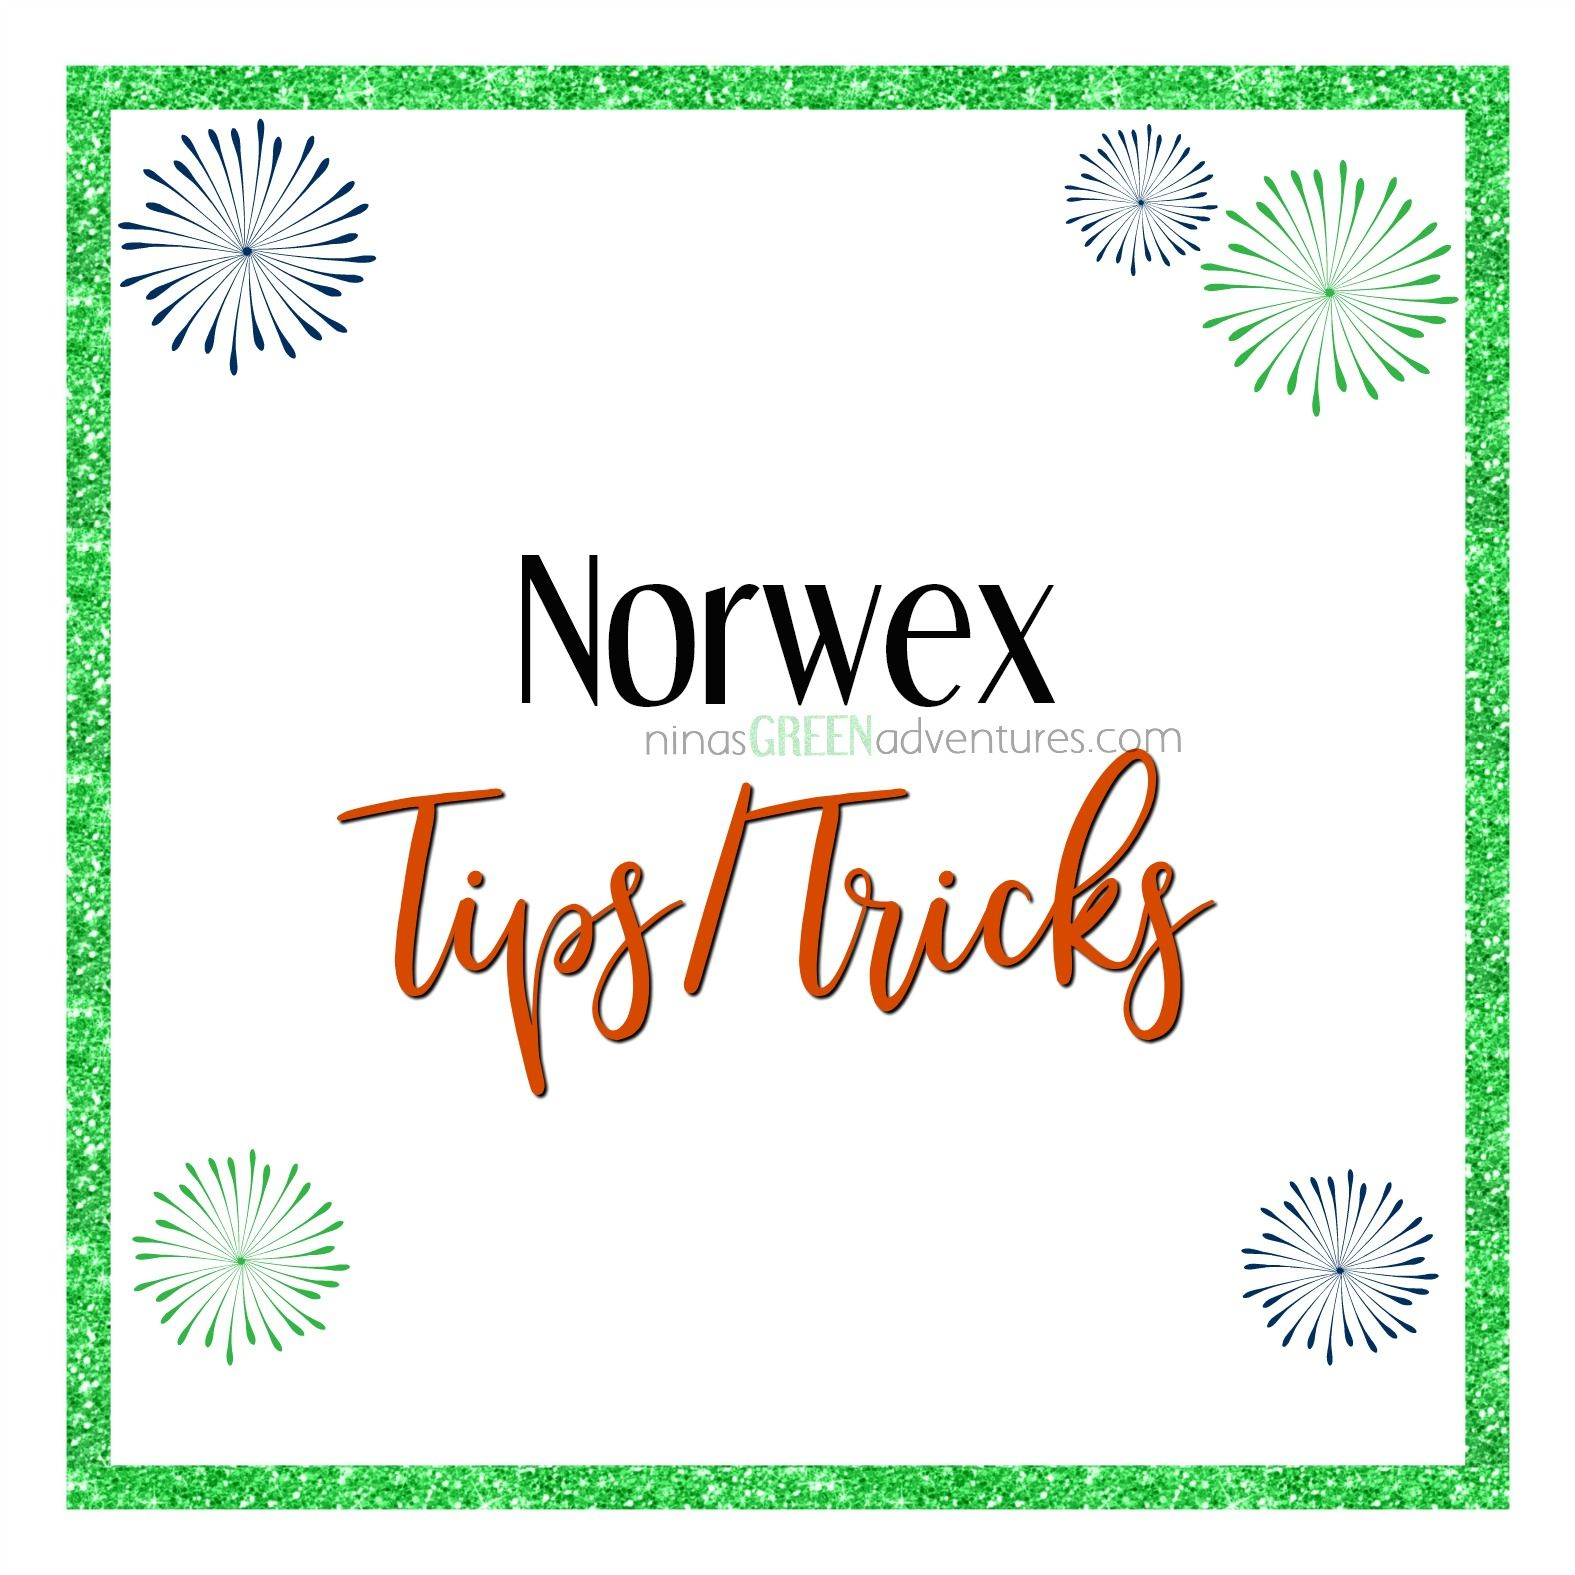 e2b4fd2b745b Norwex Tips and Trick s from Nina! Find other ways to shop and follow me at  www.ninasgreenadventures.com.  ninasgreenadventures